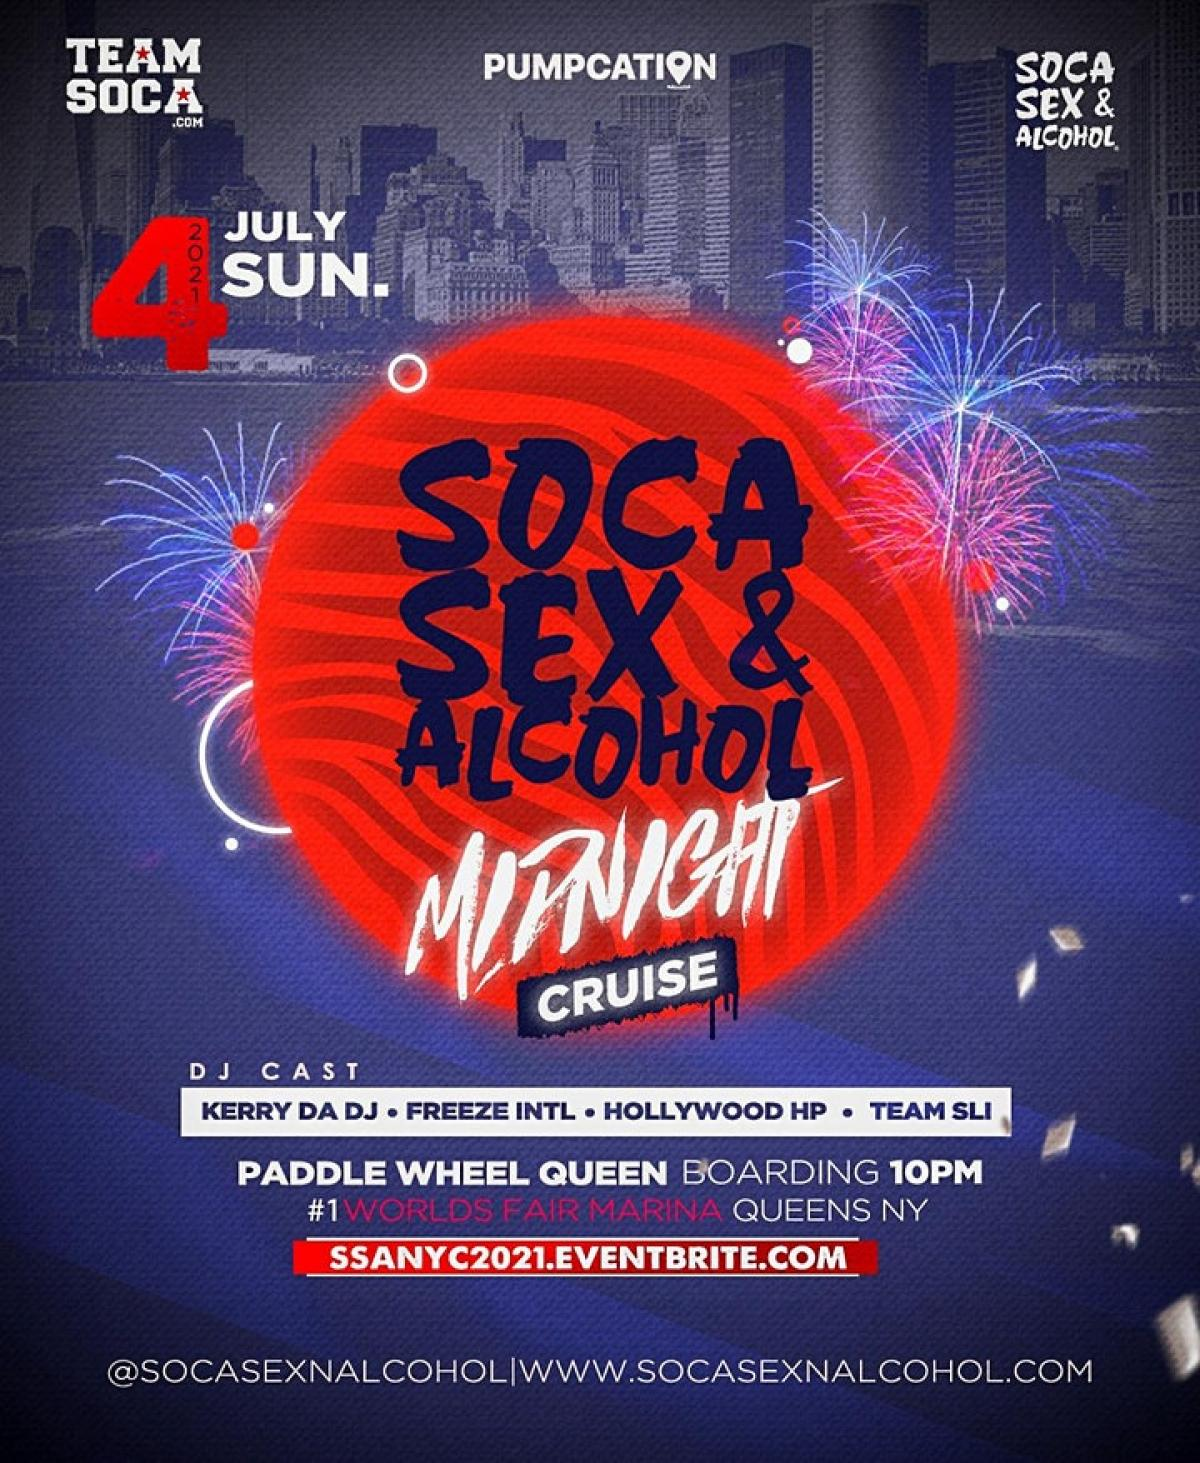 SOCA SEX & ALCOHOL Midnight Cruise flyer or graphic.